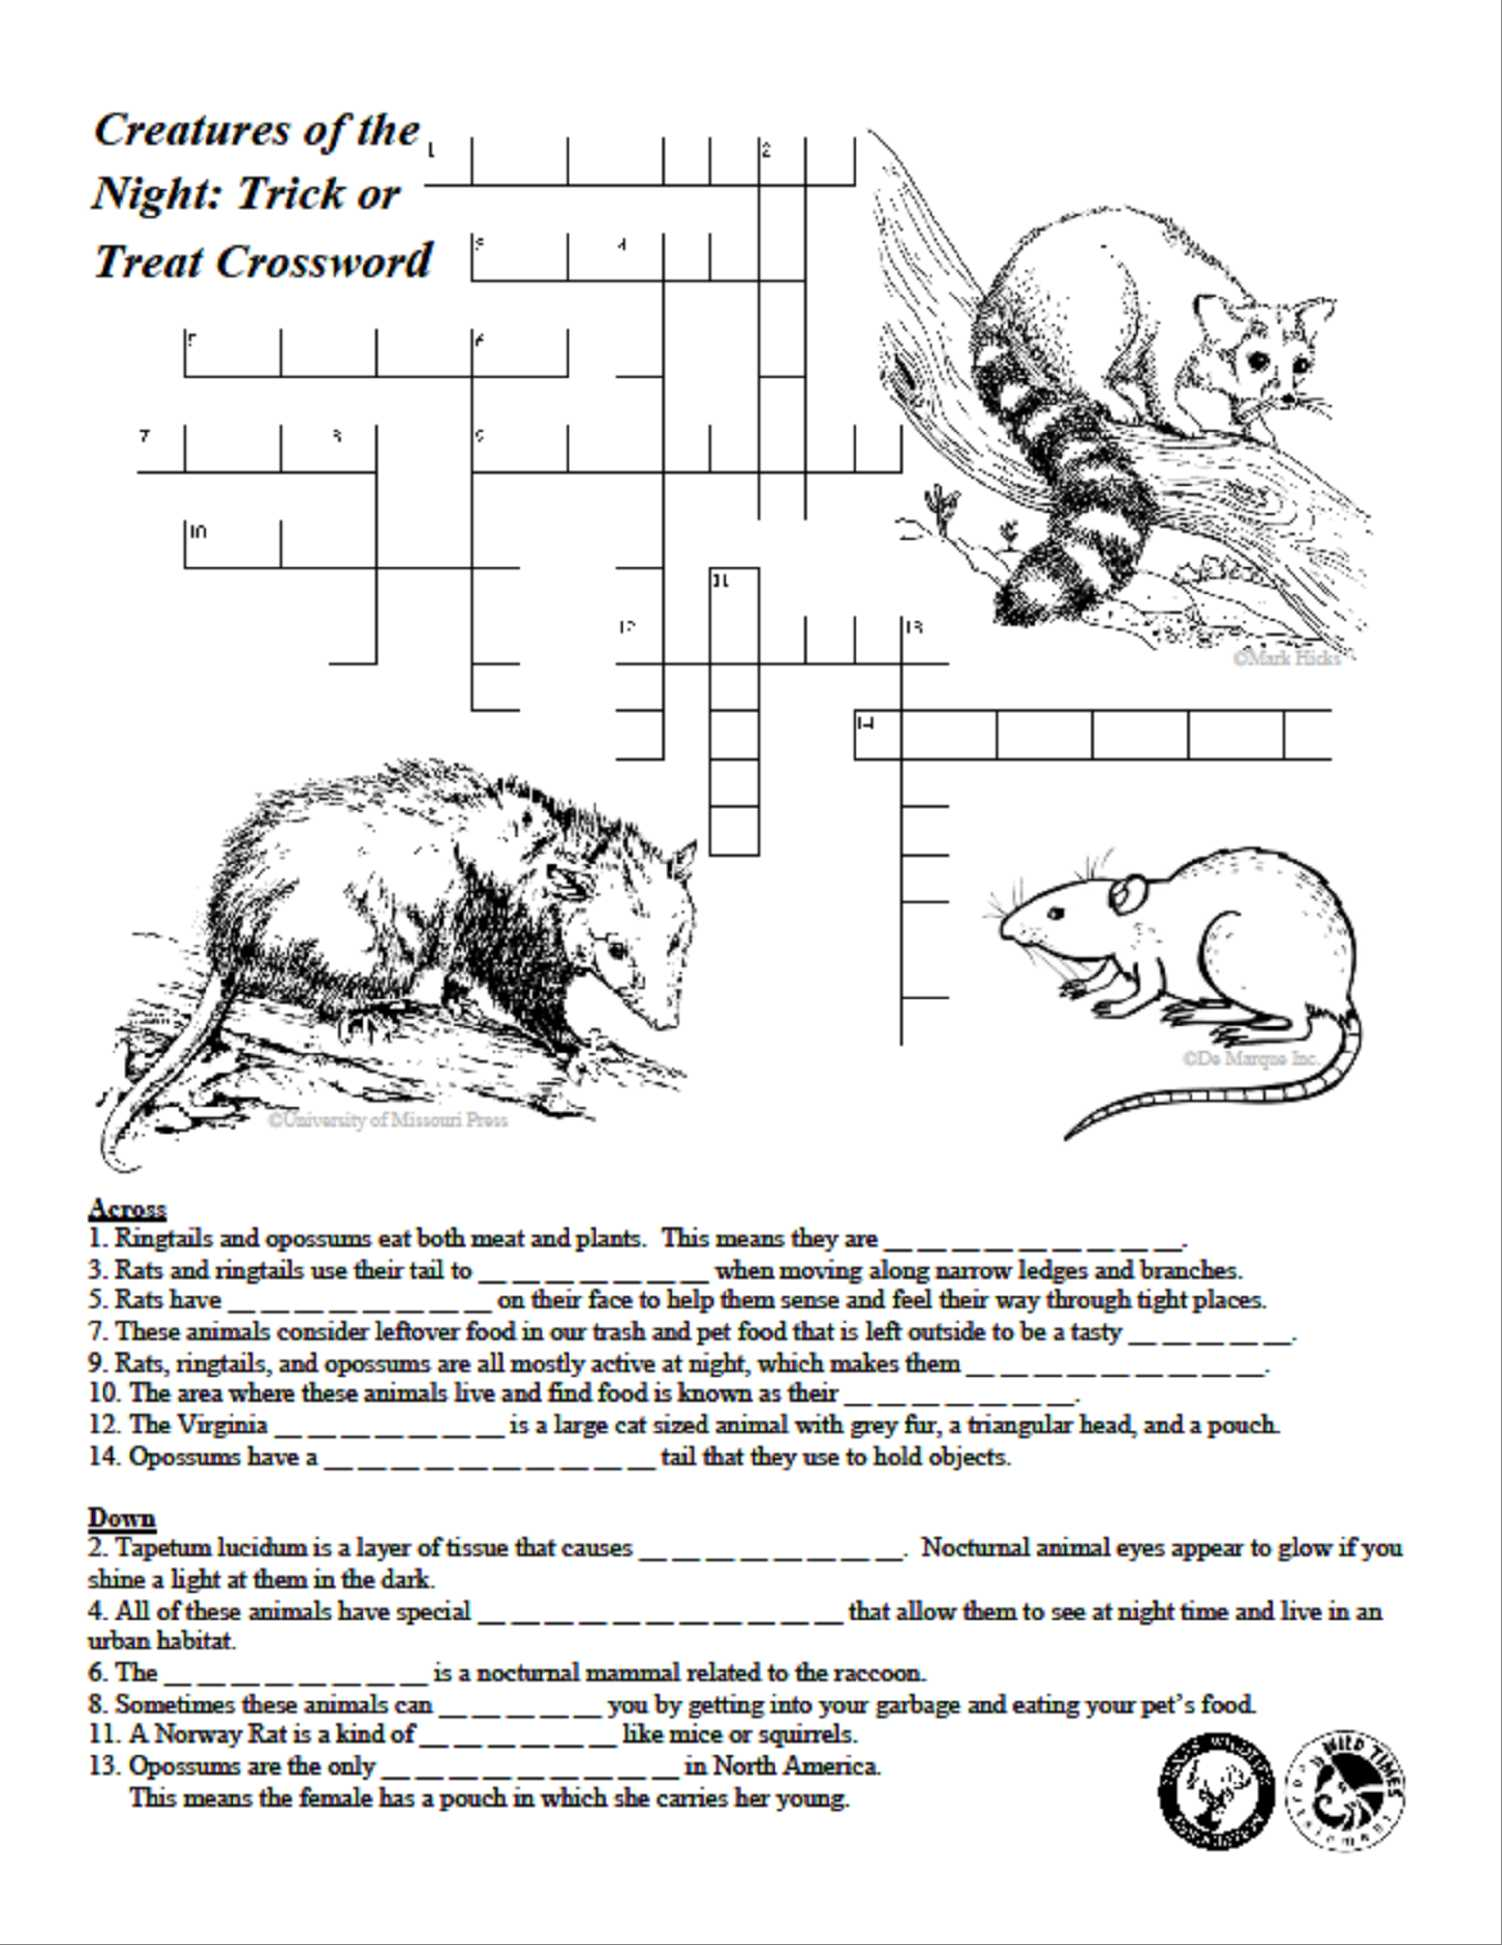 Animal Adaptations Worksheets together with Creatures Of the Night Crossword Puzzle Texas Wildlife association